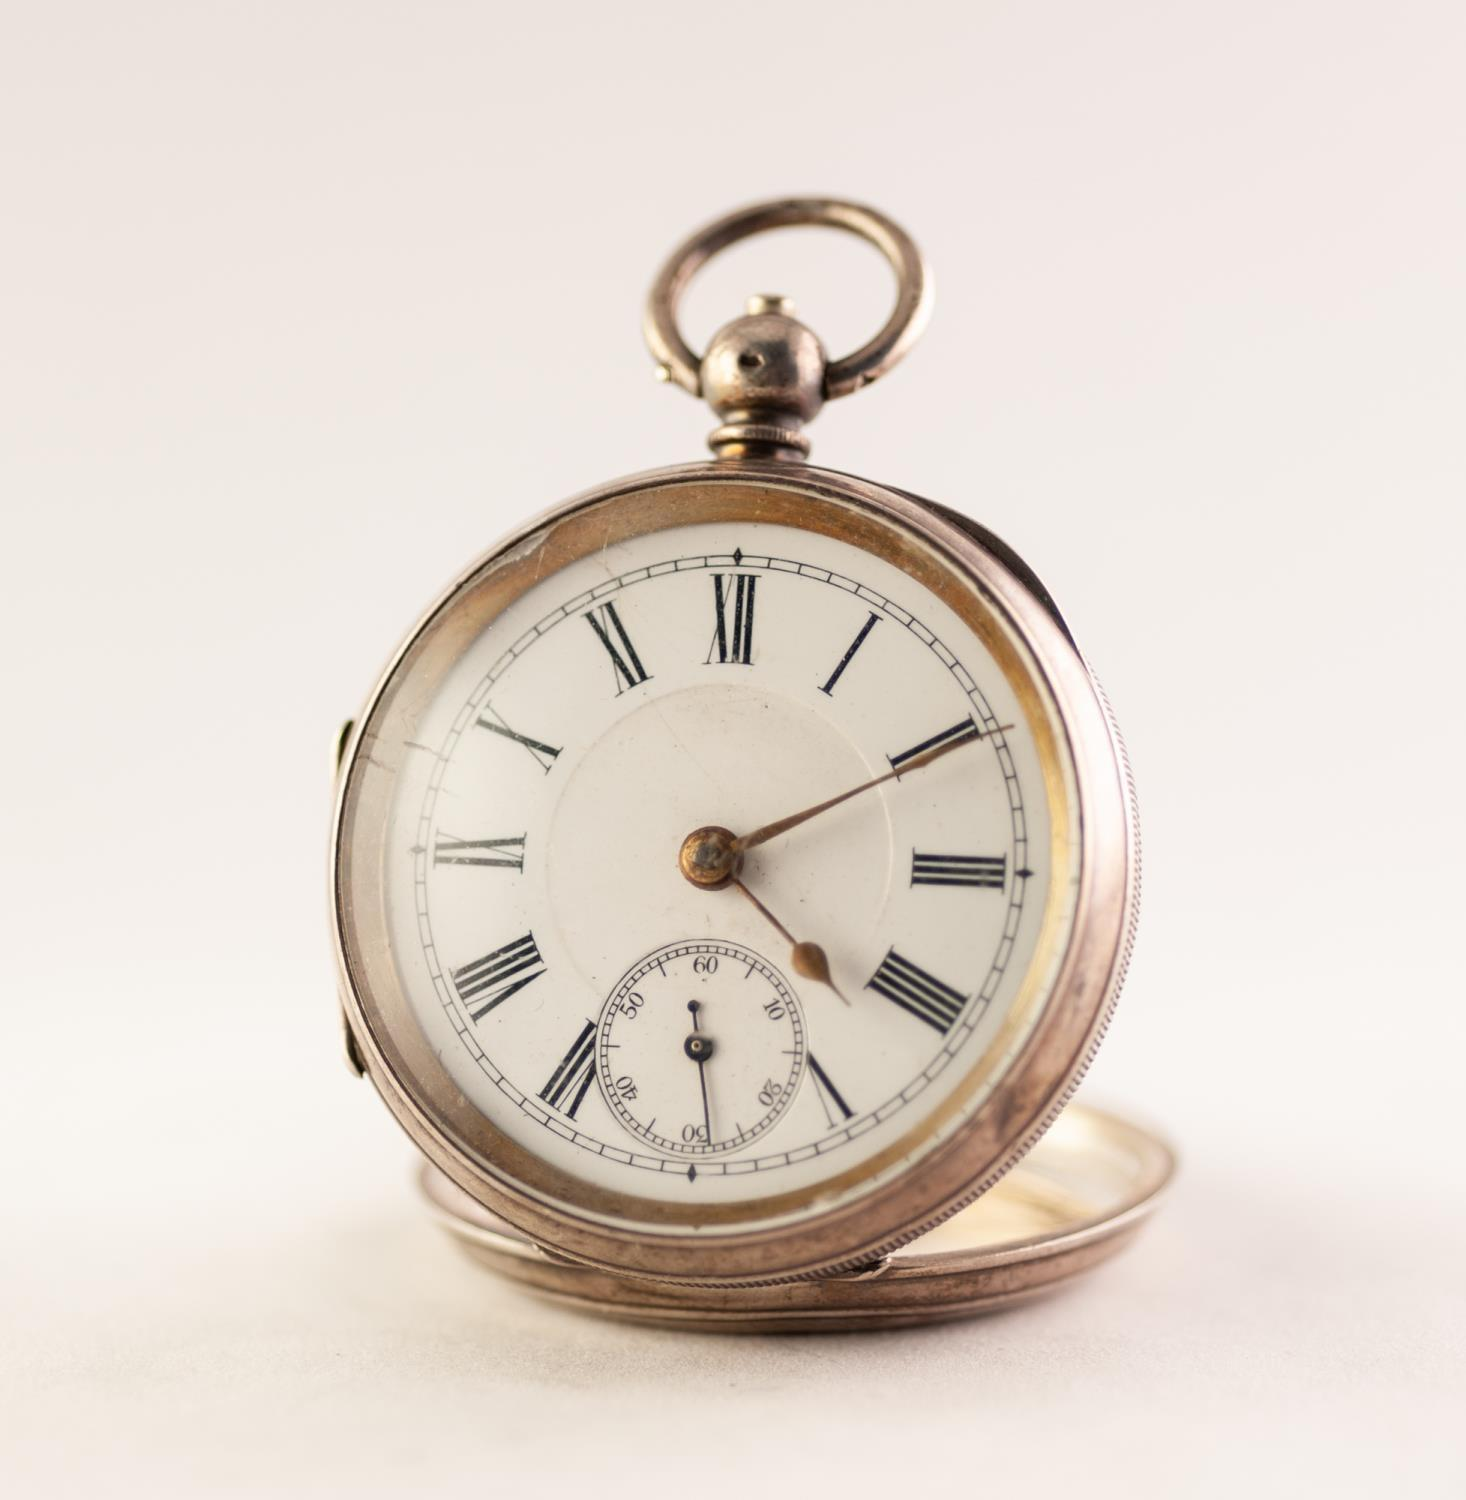 Lot 29 - SILVER OPEN FACE POCKET WATCH White enamel dial with Roman numerals and subsidiary seconds dial